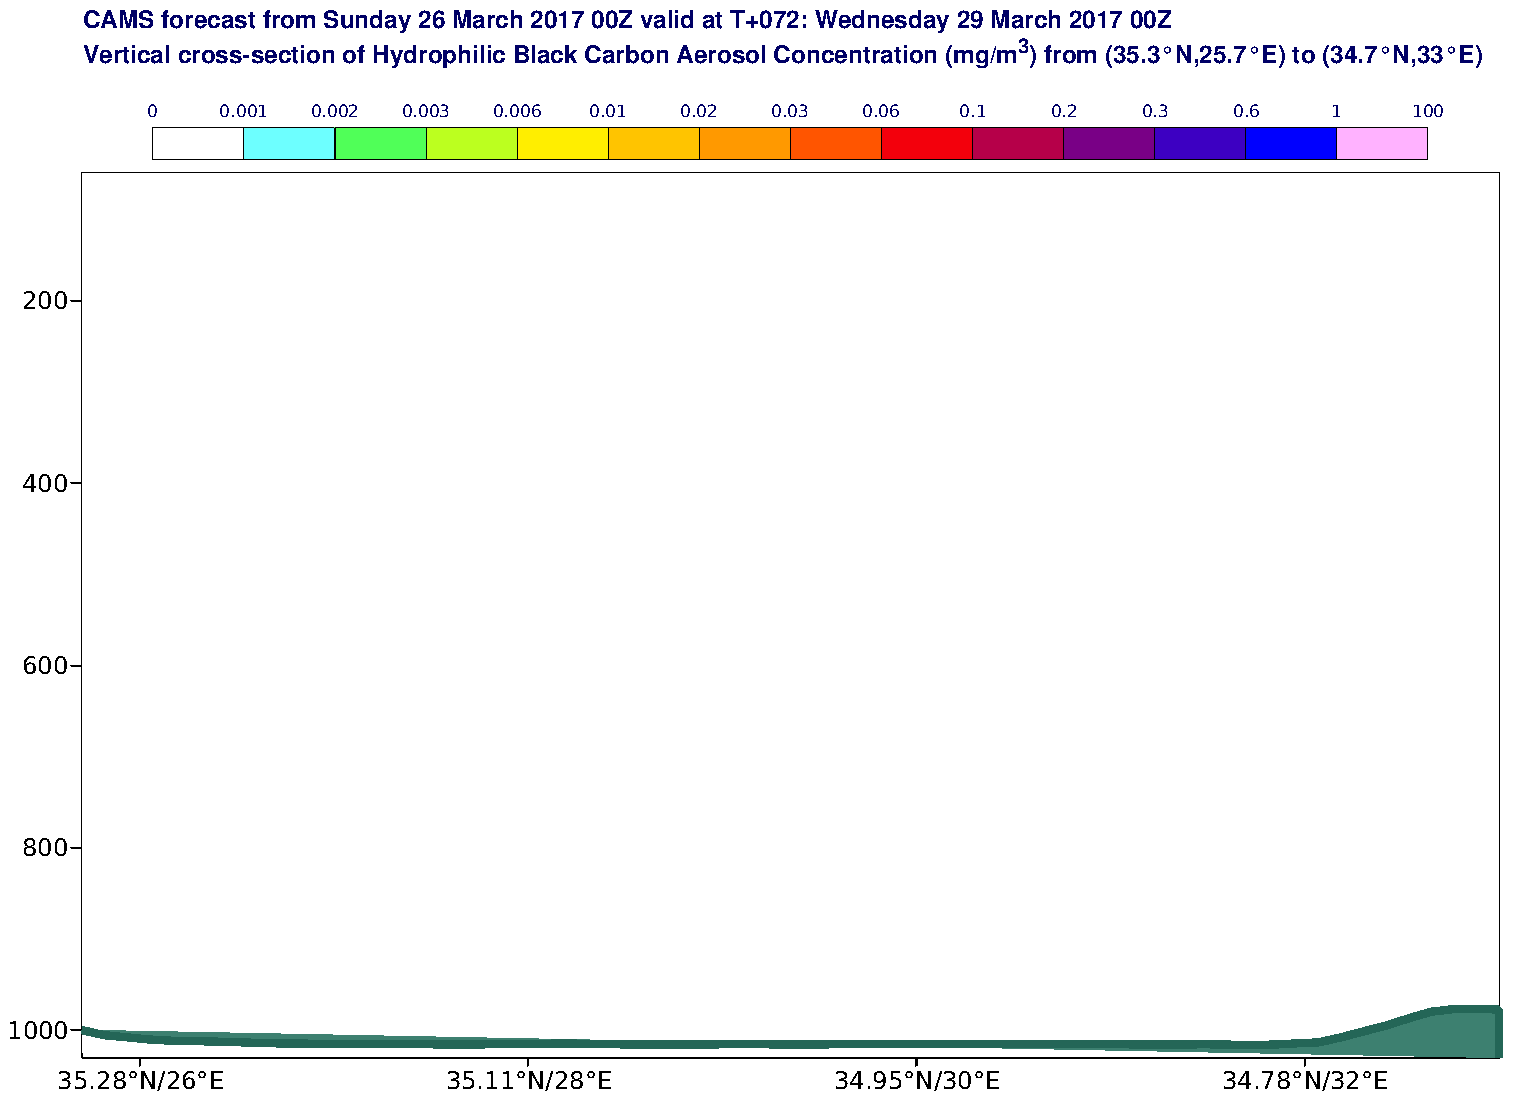 Vertical cross-section of Hydrophilic Black Carbon Aerosol Concentration (mg/m3) valid at T72 - 2017-03-29 00:00